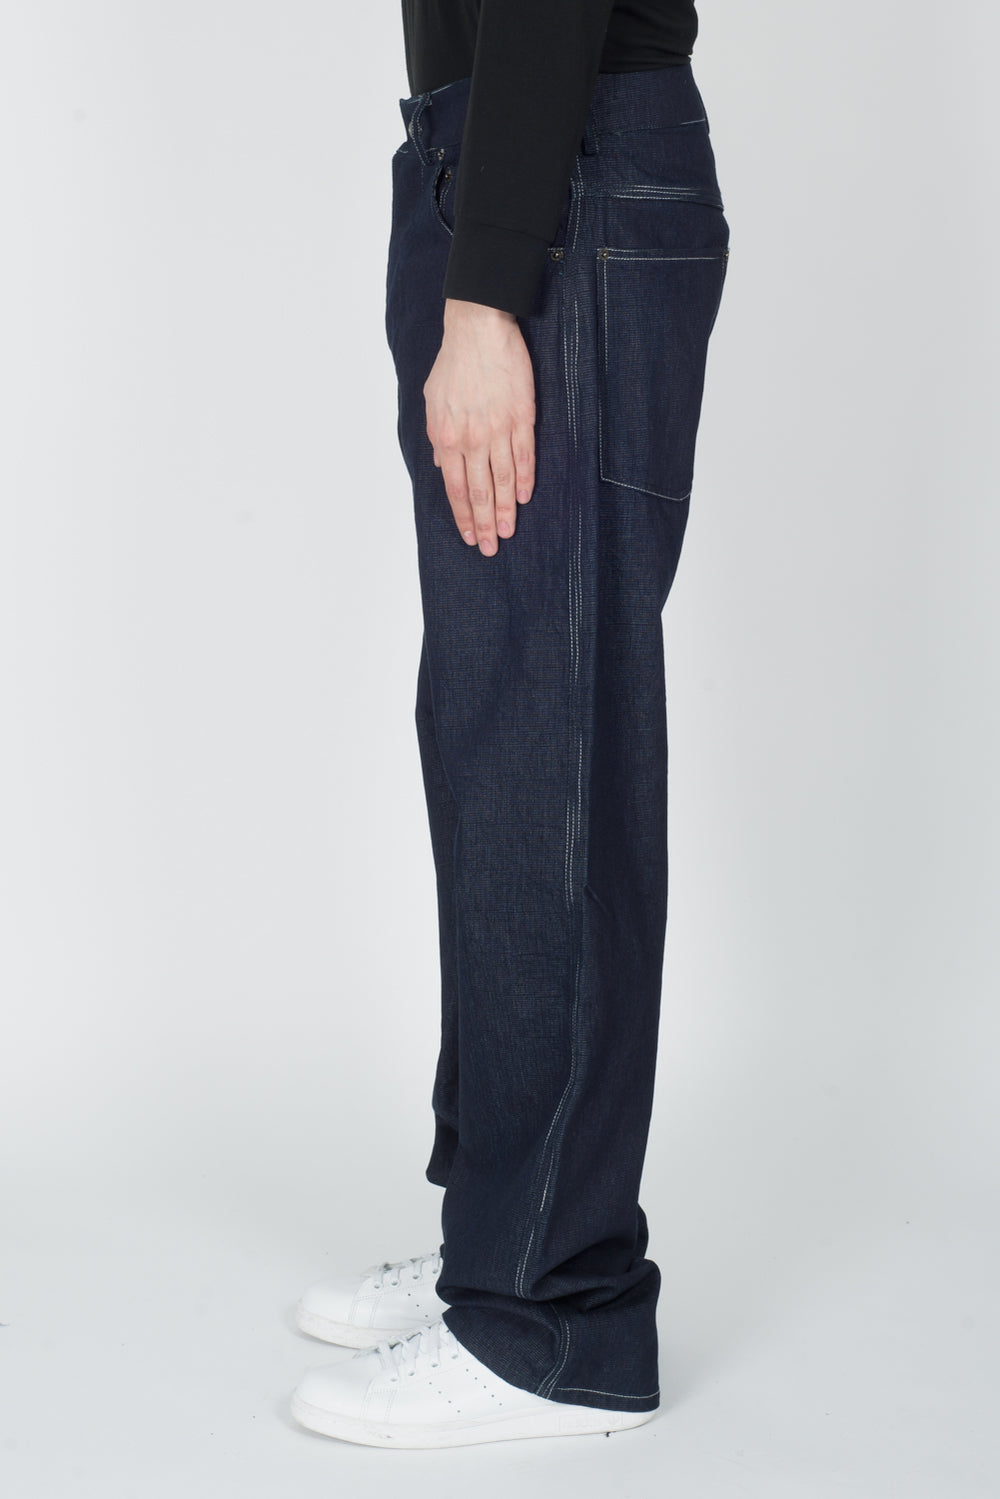 Missoni Classic Denim Jeans In Dark Indigo